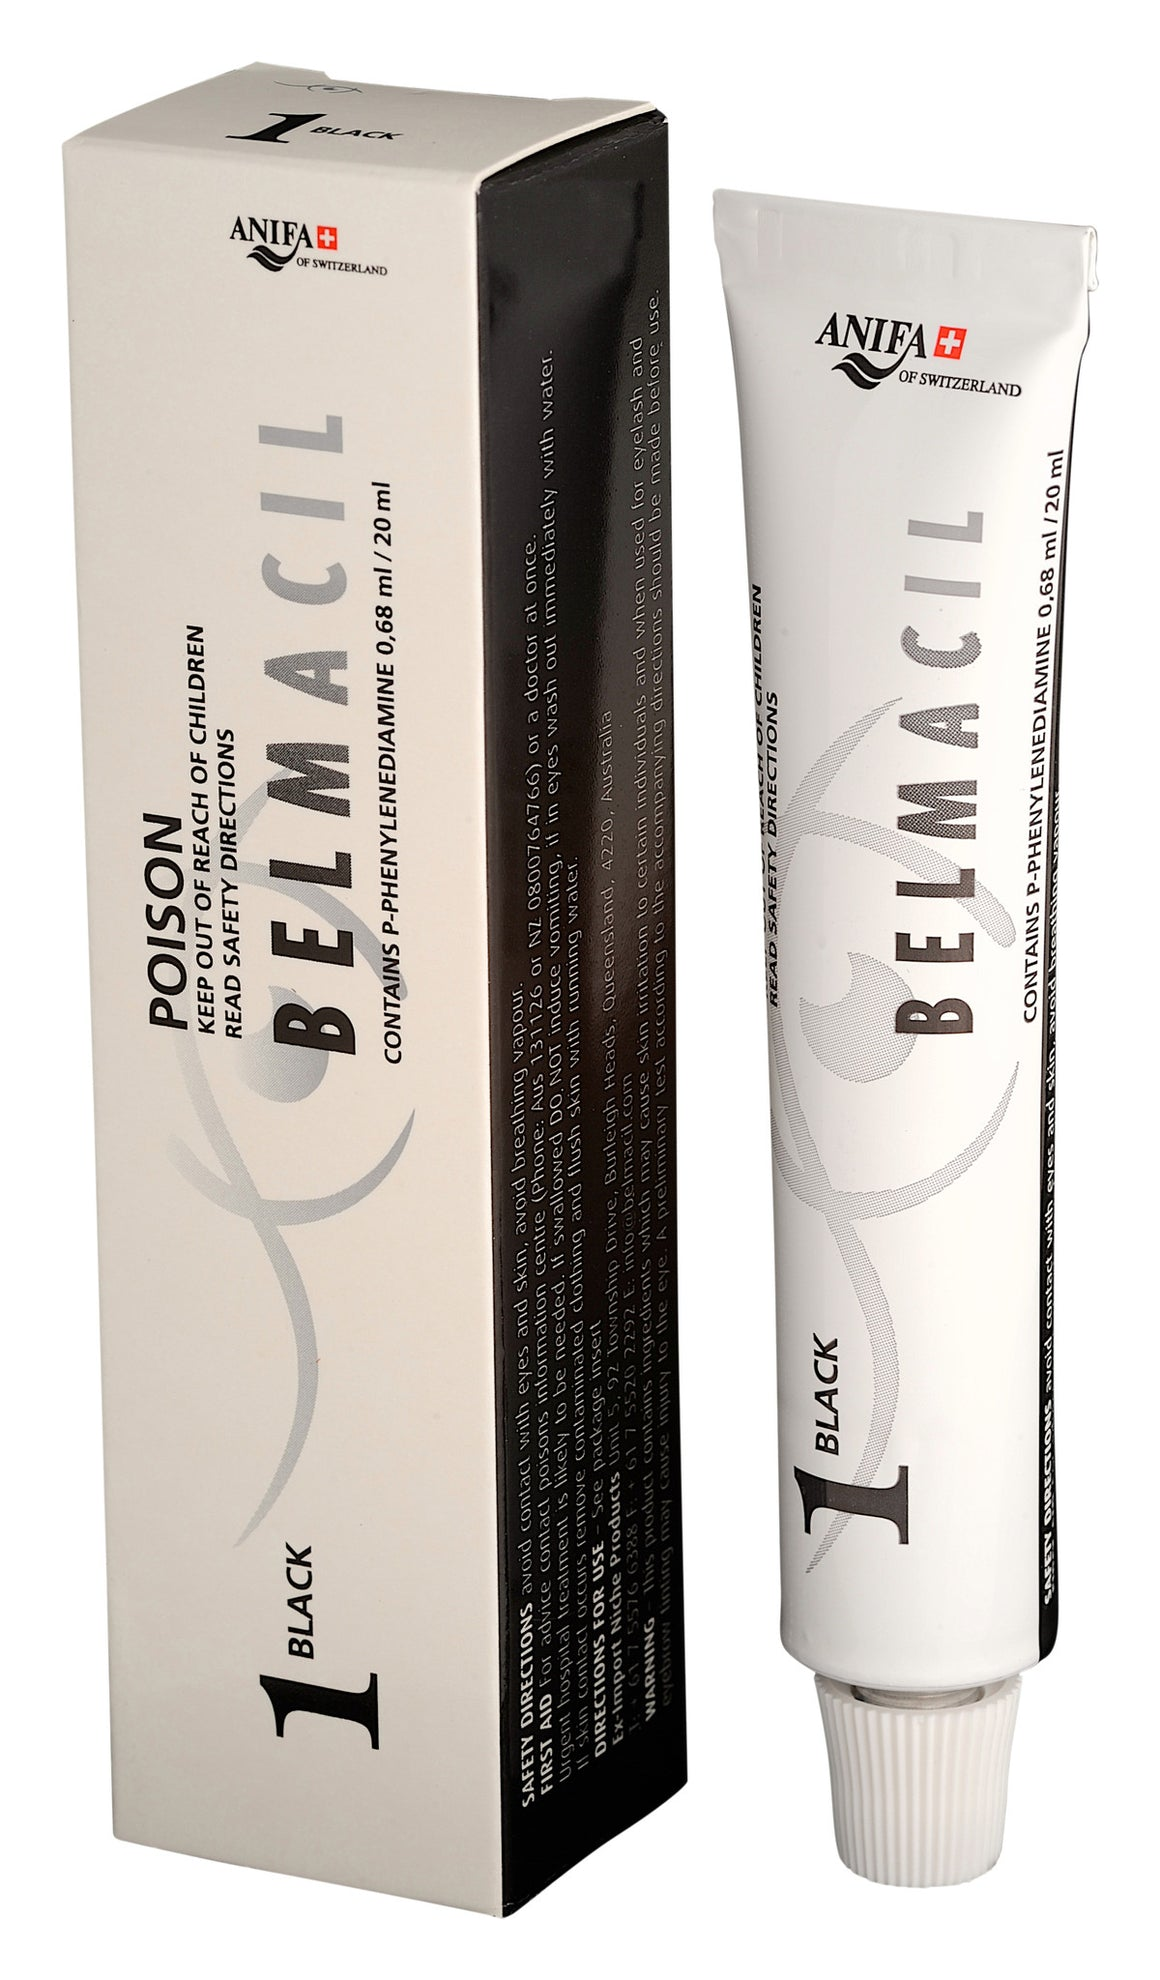 Belmacil Lash and Brow Tint Colors - The Lash Shop @ StellaLash